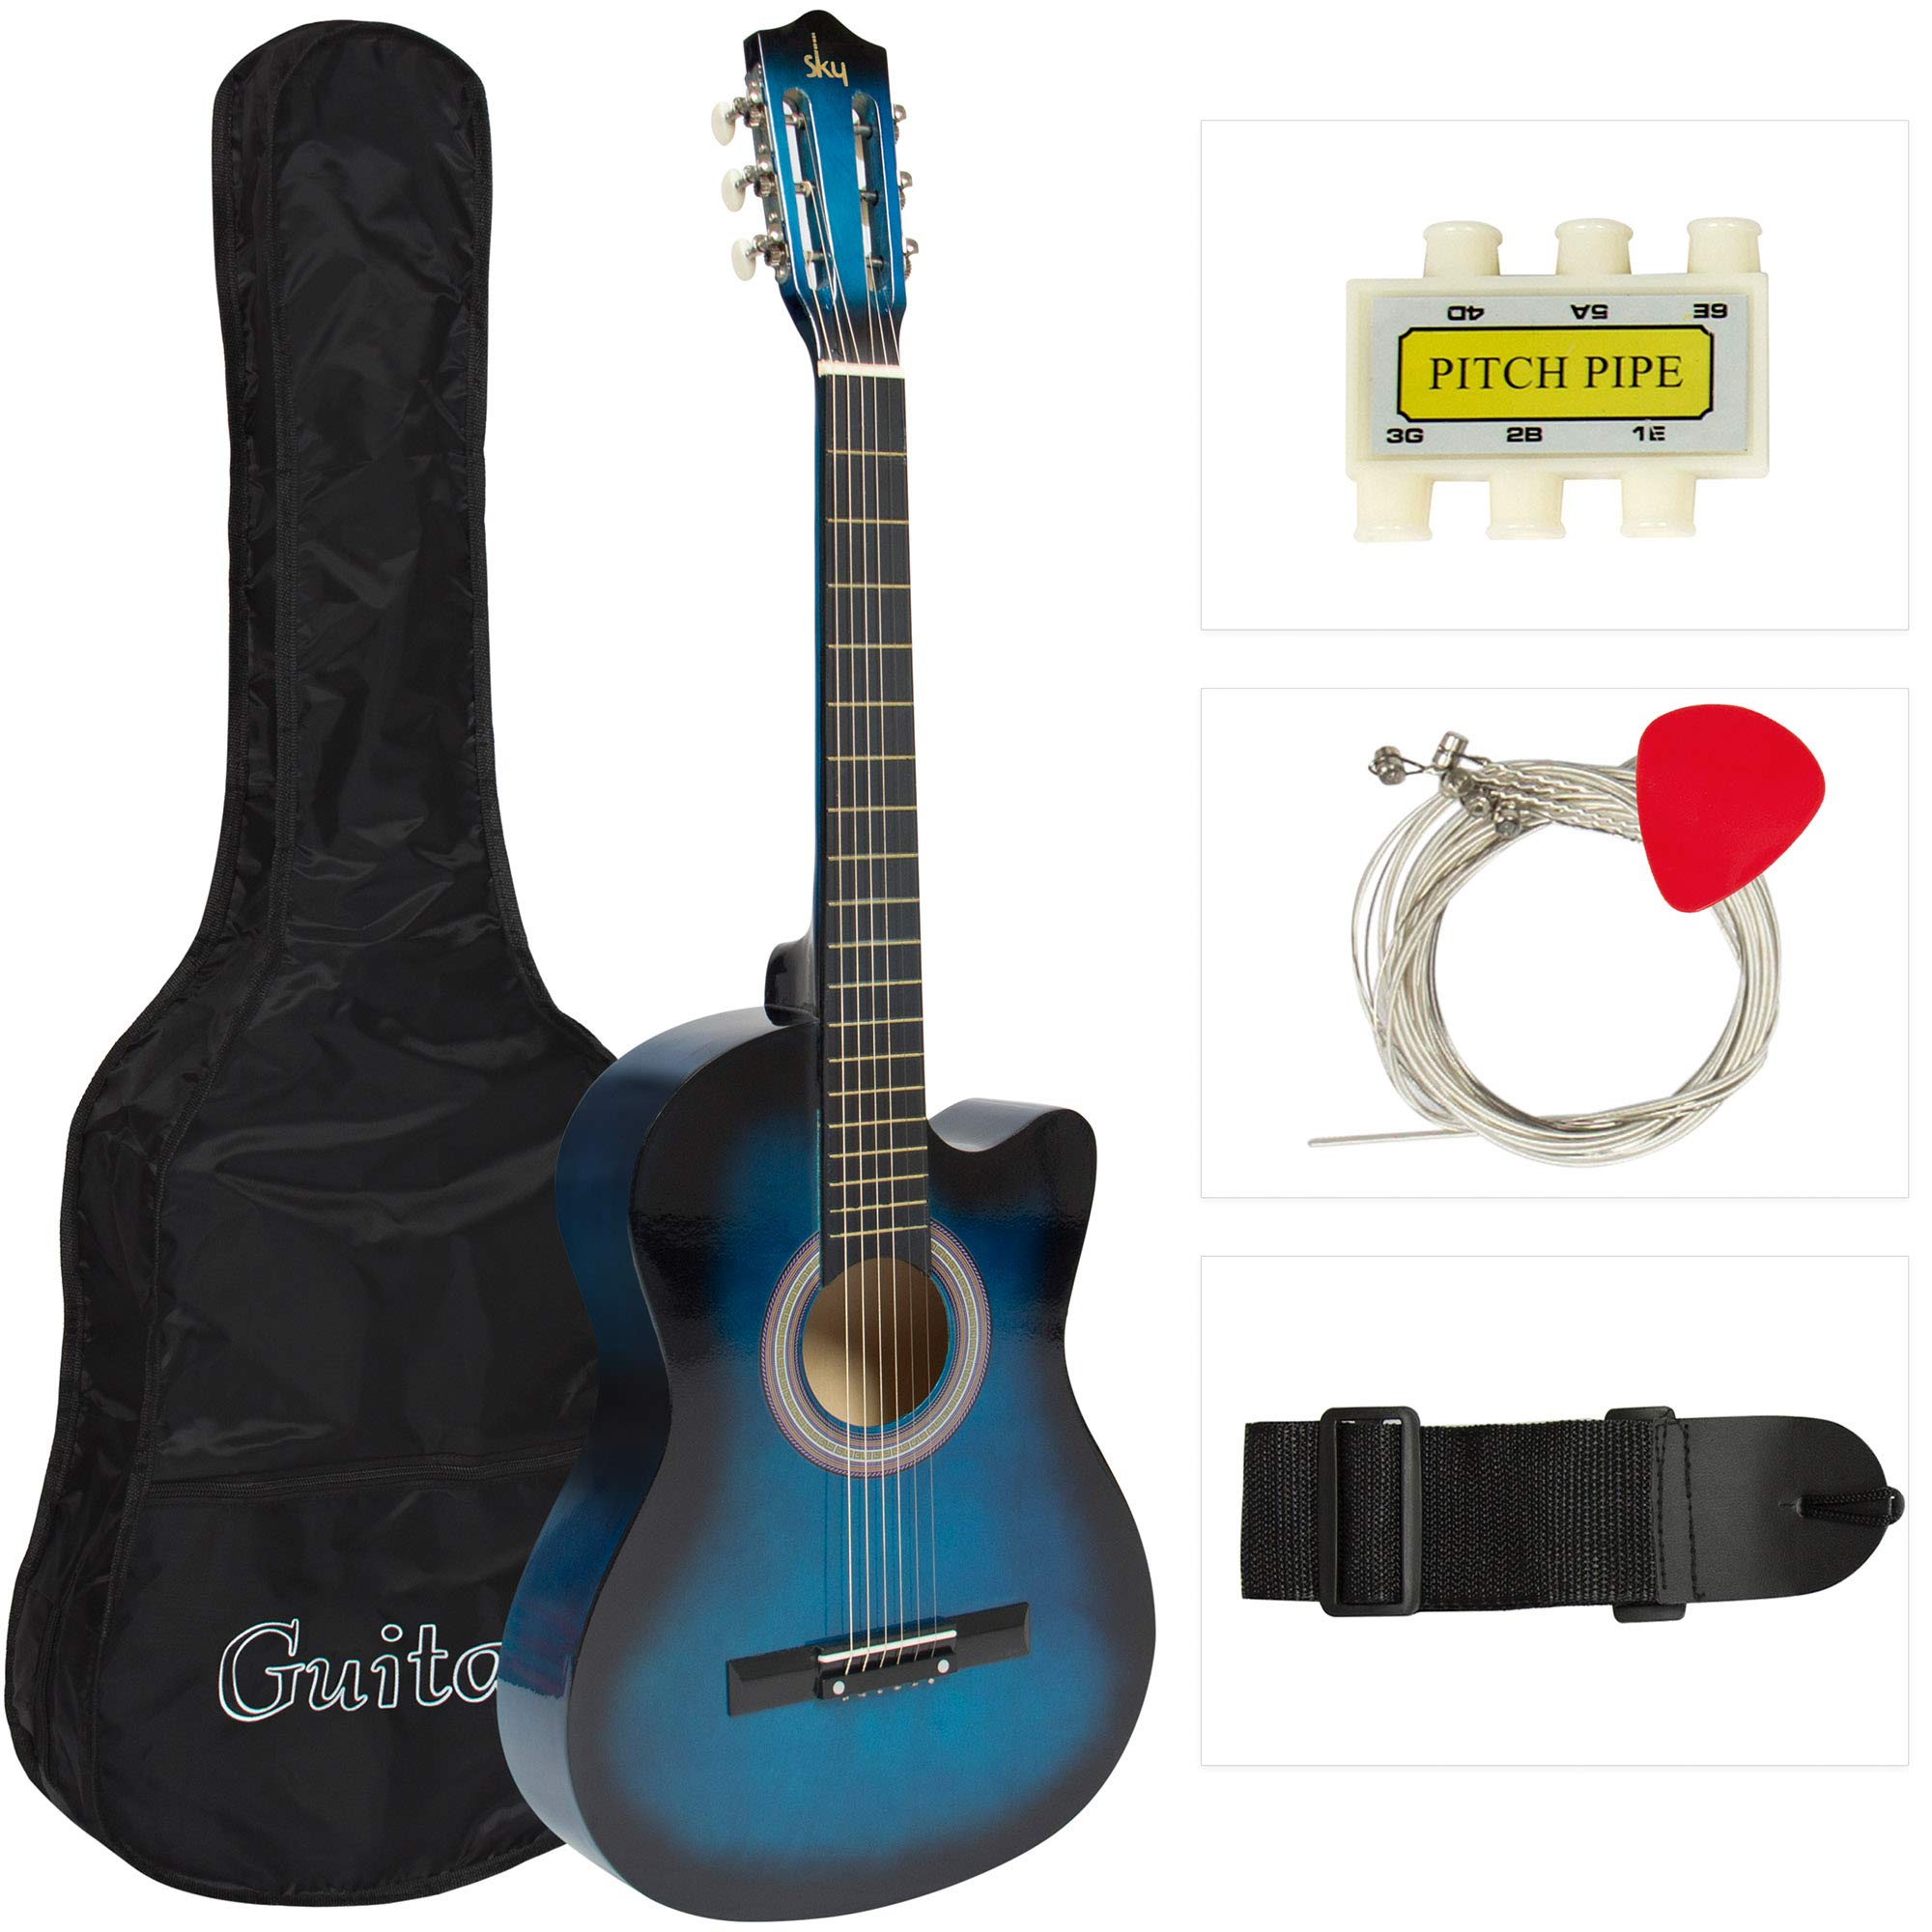 Best Choice Products 38in Beginner Acoustic Cutaway Guitar Set w/Extra Strings, Case, Strap, Tuner, and Pick (Blue) by Best Choice Products